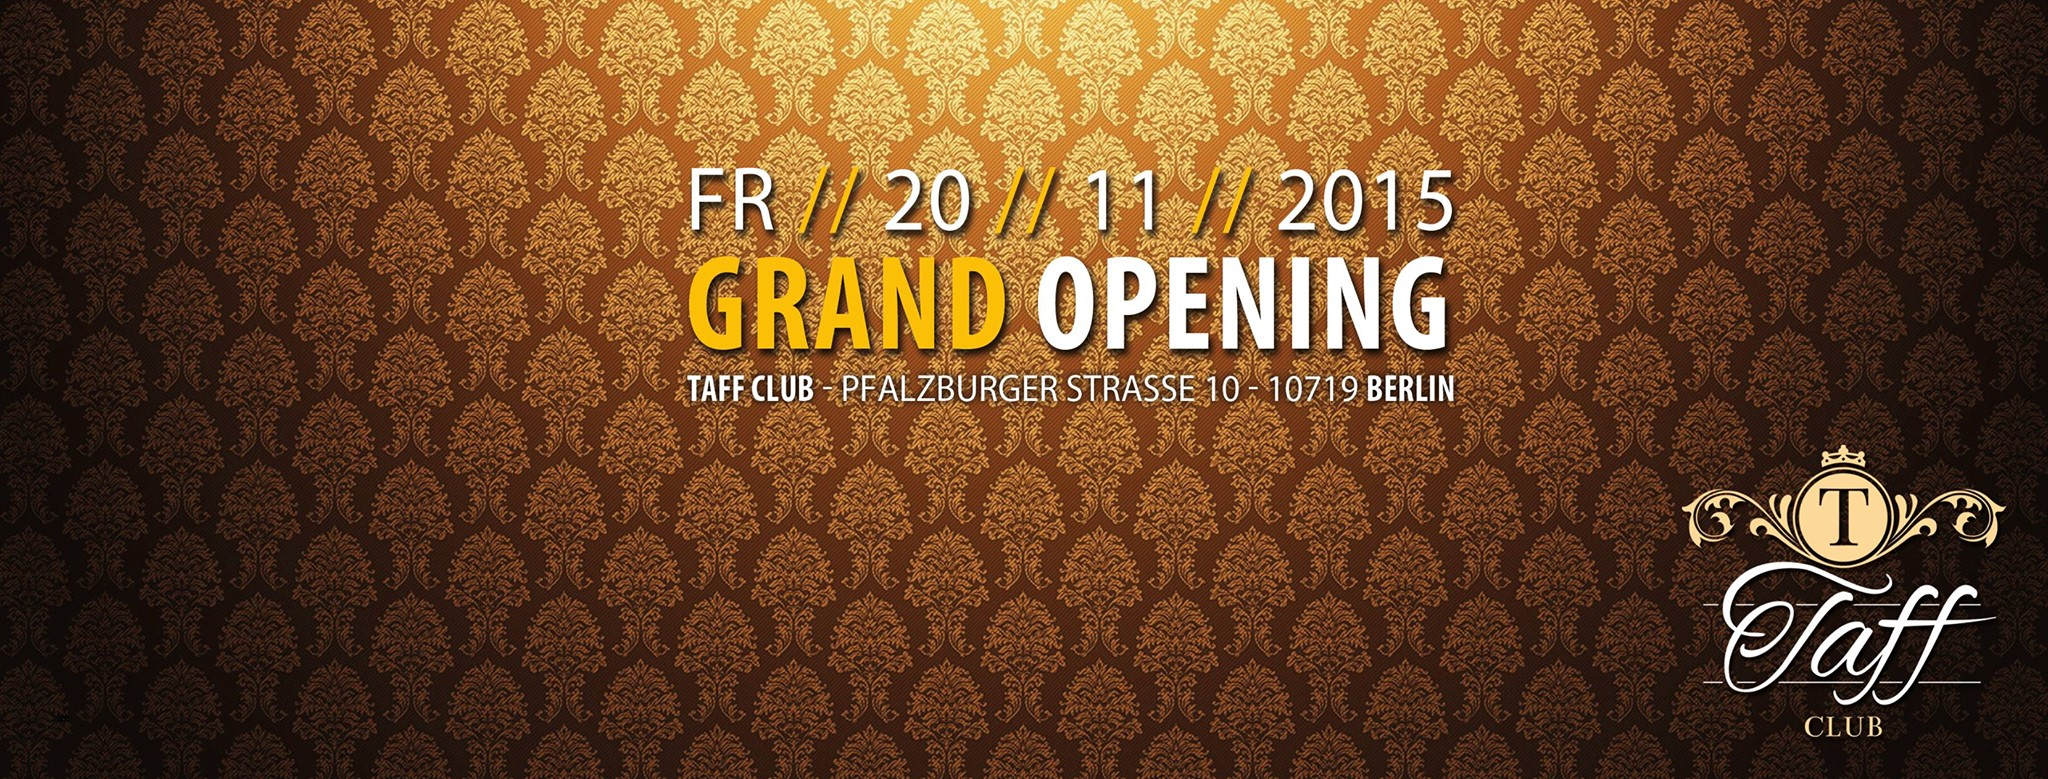 TAFF CLUB BERLIN